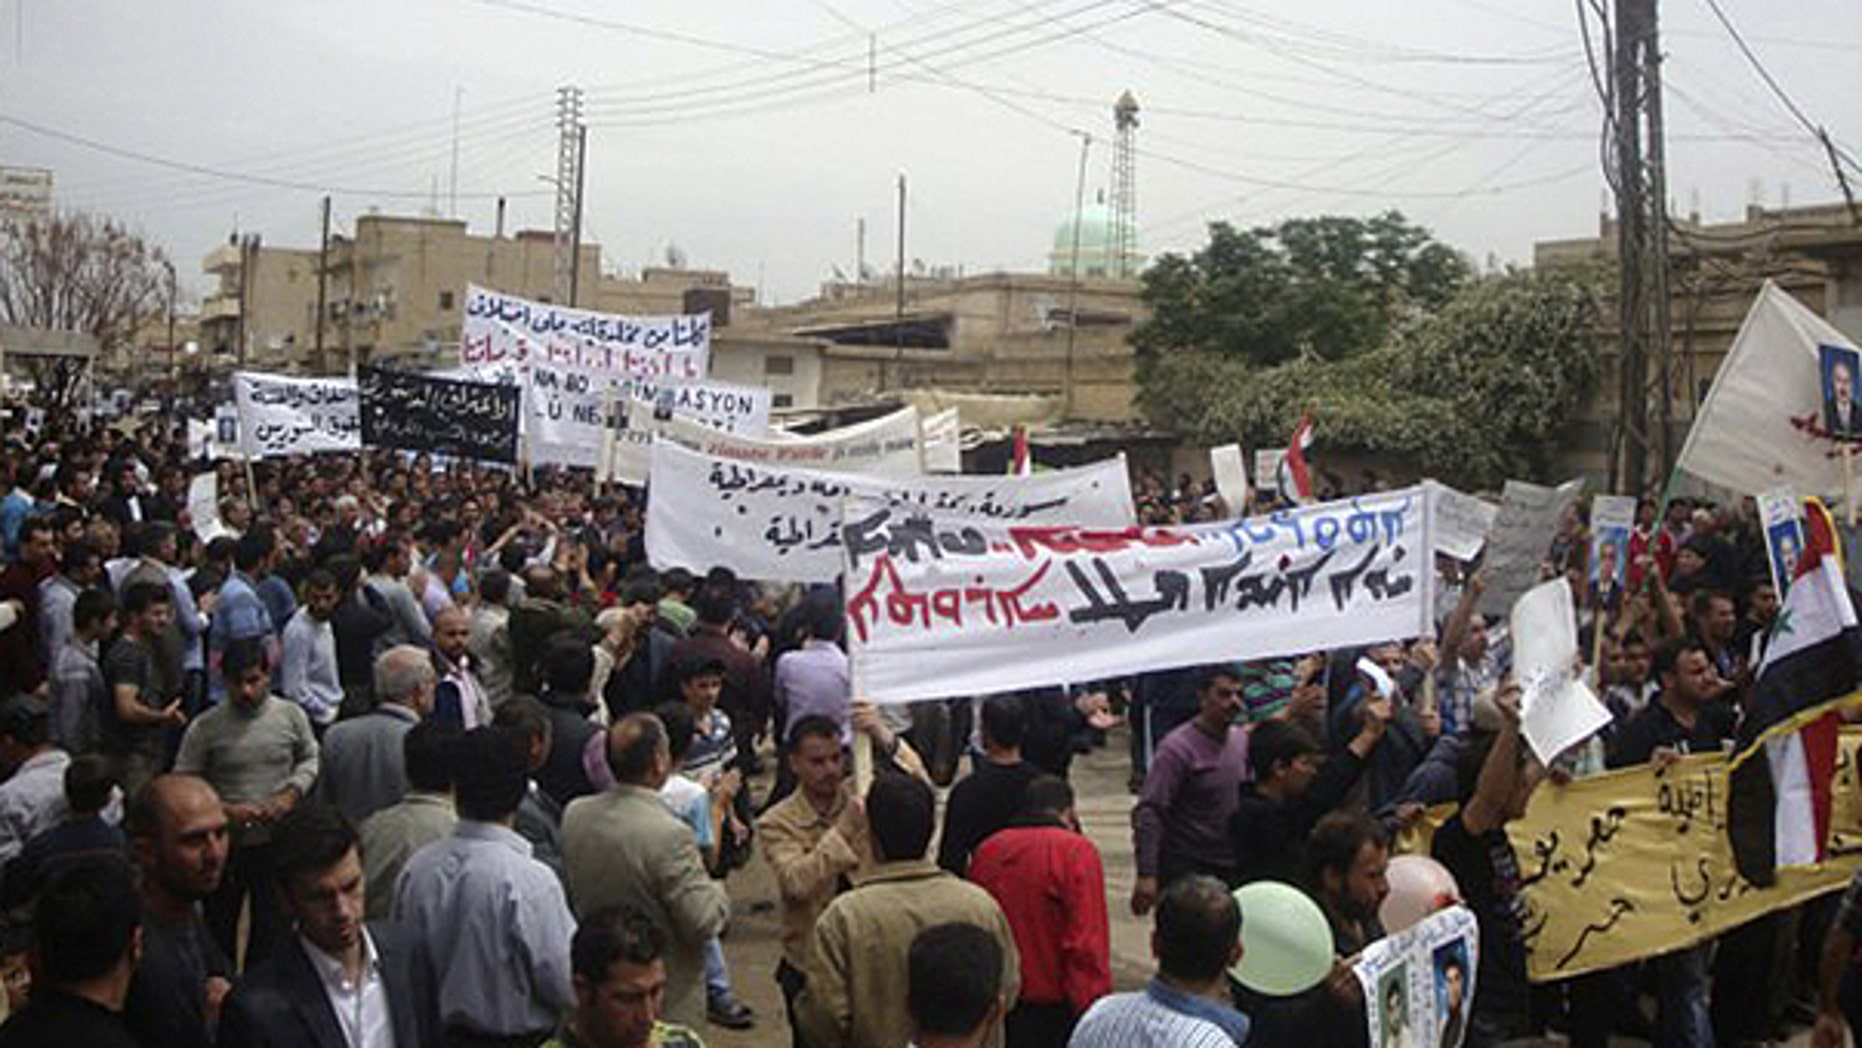 In this citizen journalism image made on a mobile phone and acquired by the AP, Syrian protesters carry banners in Arabic and Kurdish that call for a democratic nation as they demonstrate in the northeastern town of Qamishli, Syria, Friday, April 29, 2011.